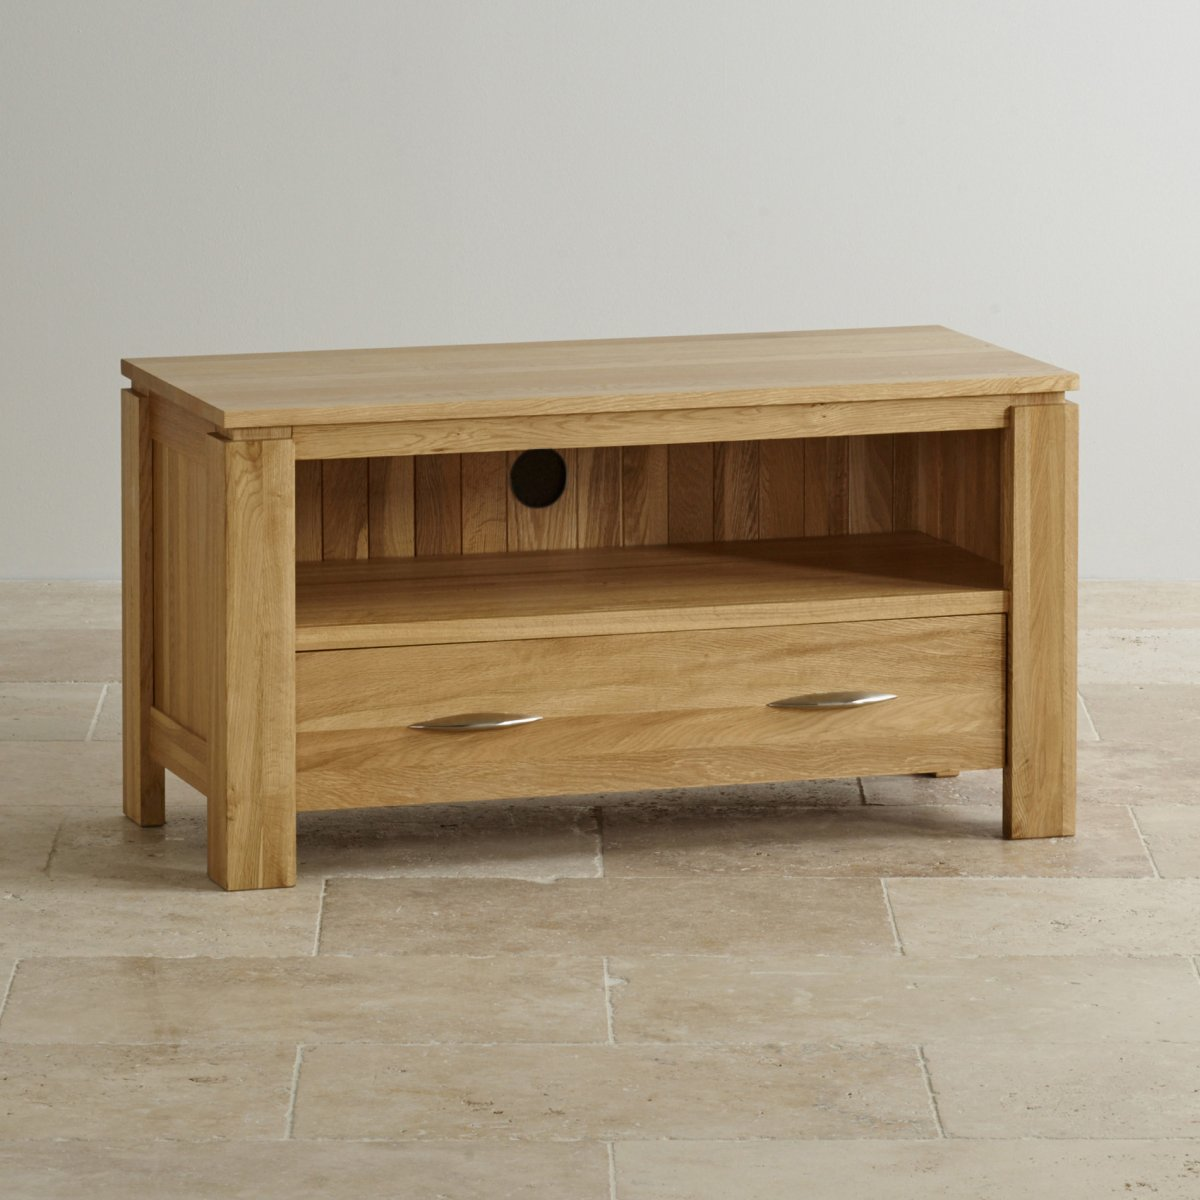 Galway natural solid oak tv dvd stand living room for Solid oak furniture